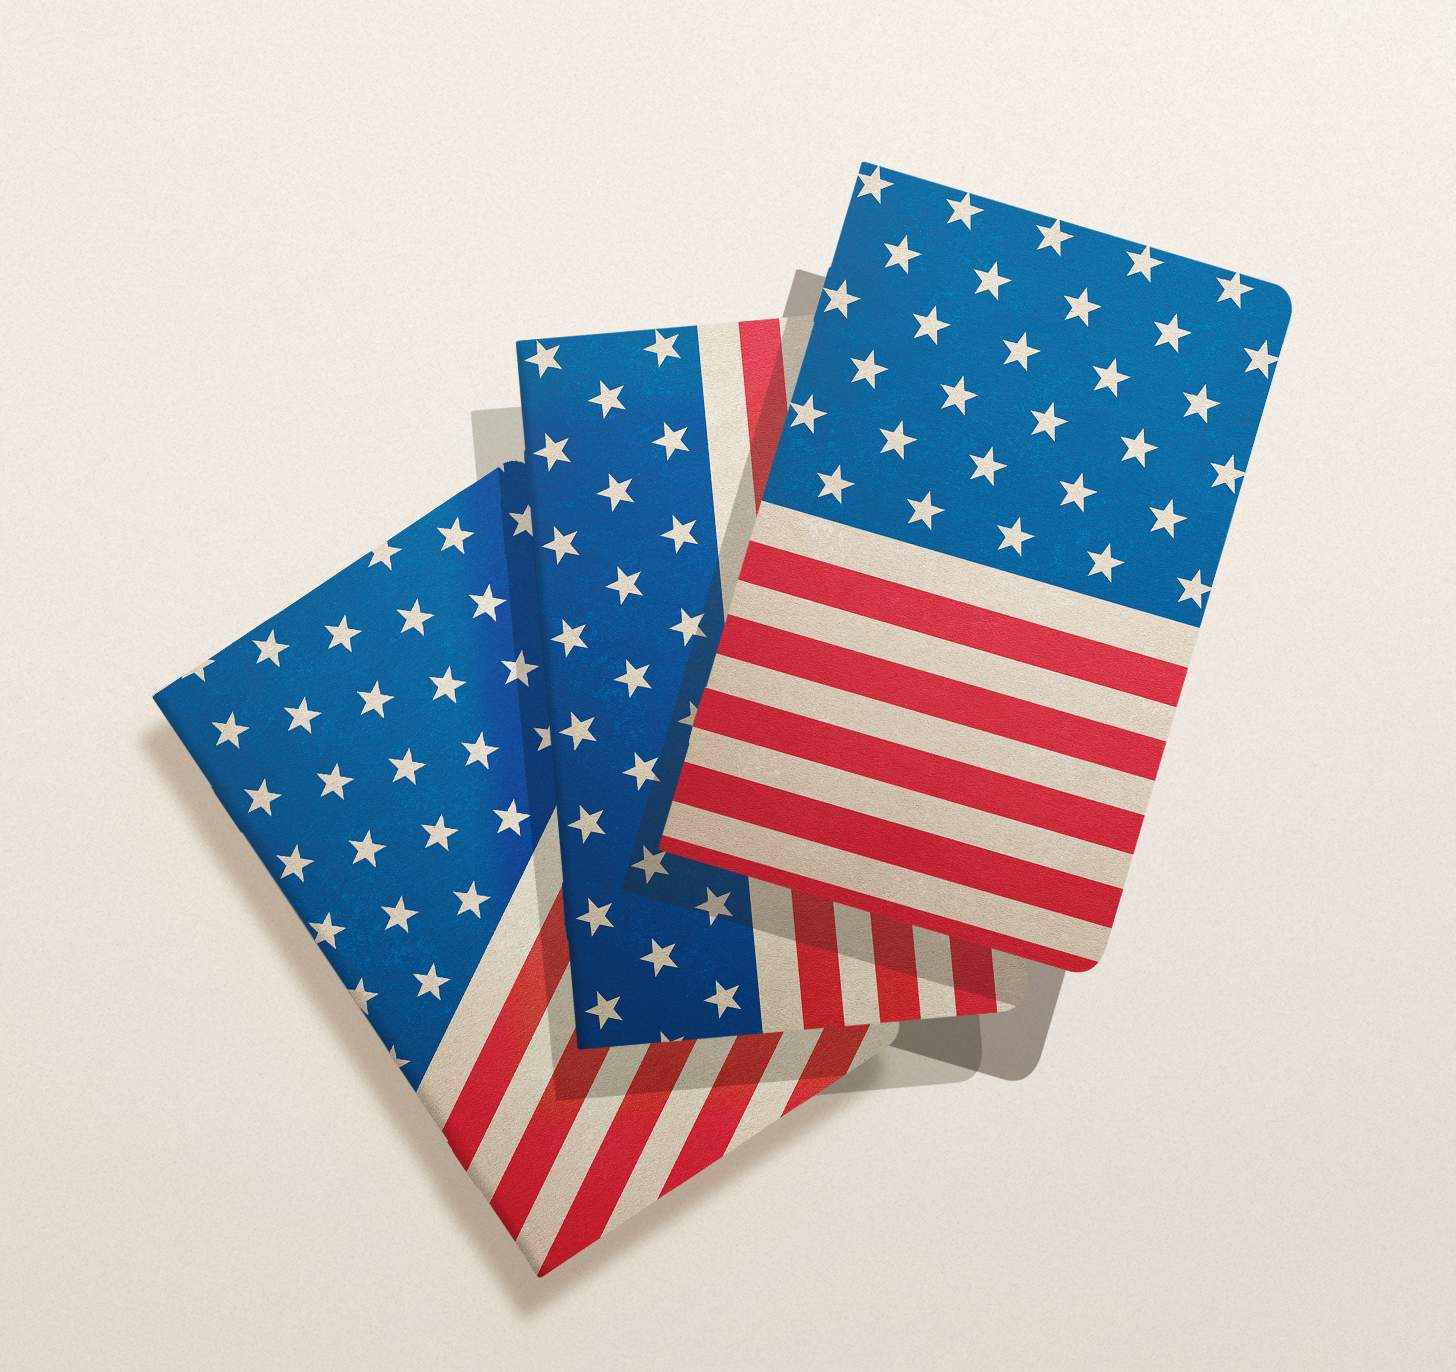 Three overlapping red, white and blue American flag themed notebooks